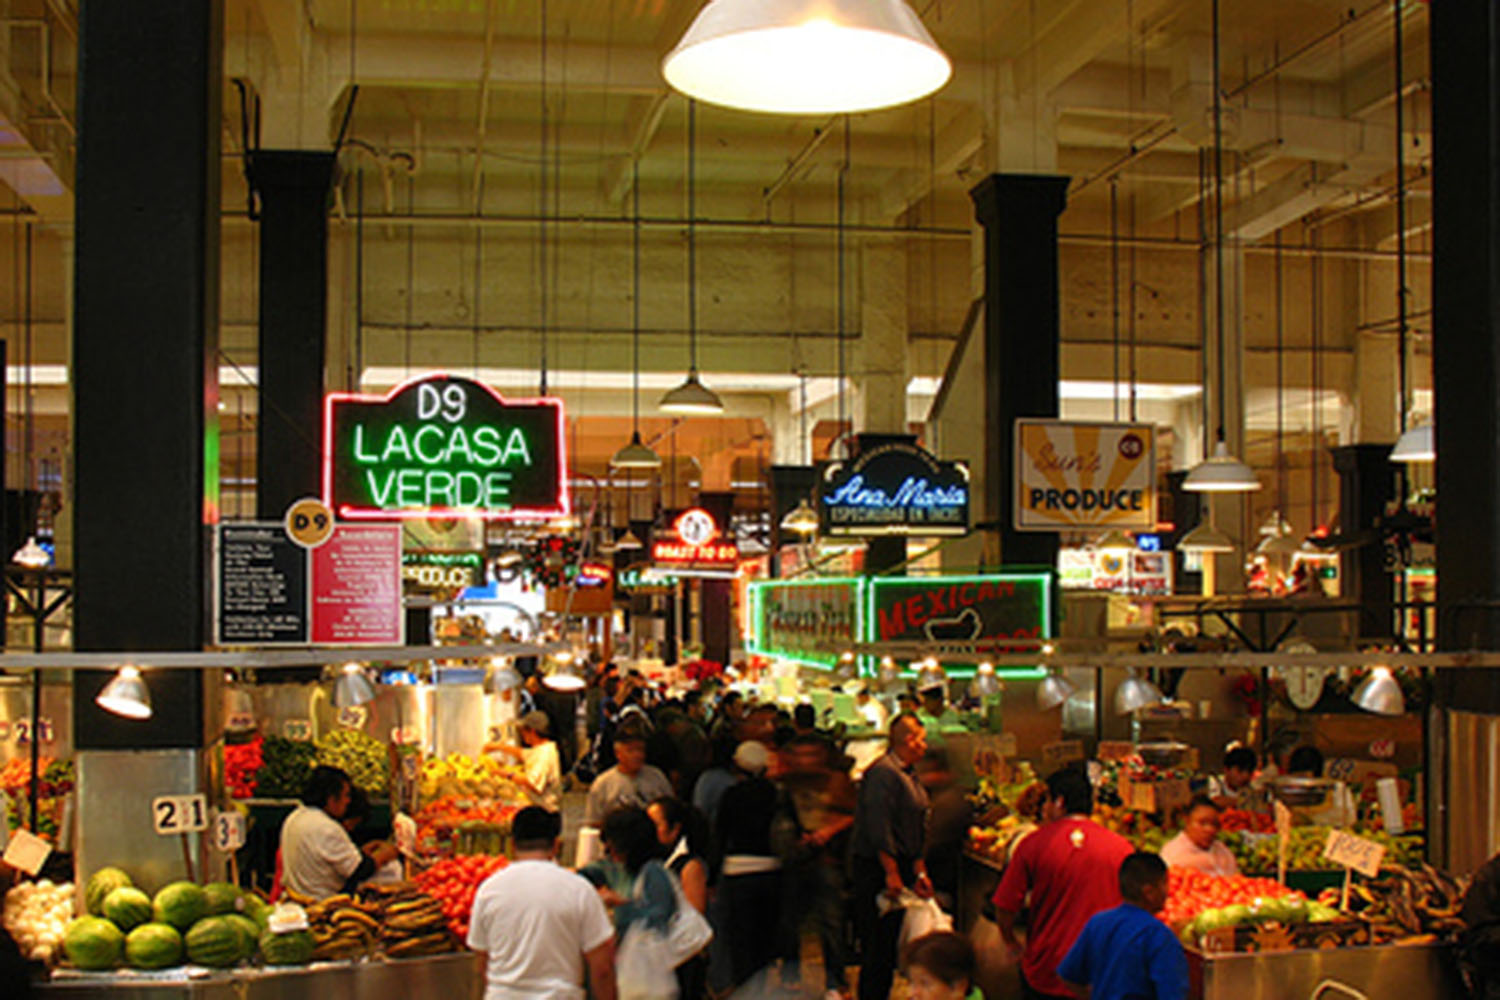 Visitors of Downtown Los Angeles' Grand Central Market check out restaurants. The market is home to more than 30 restaurants and different shops.